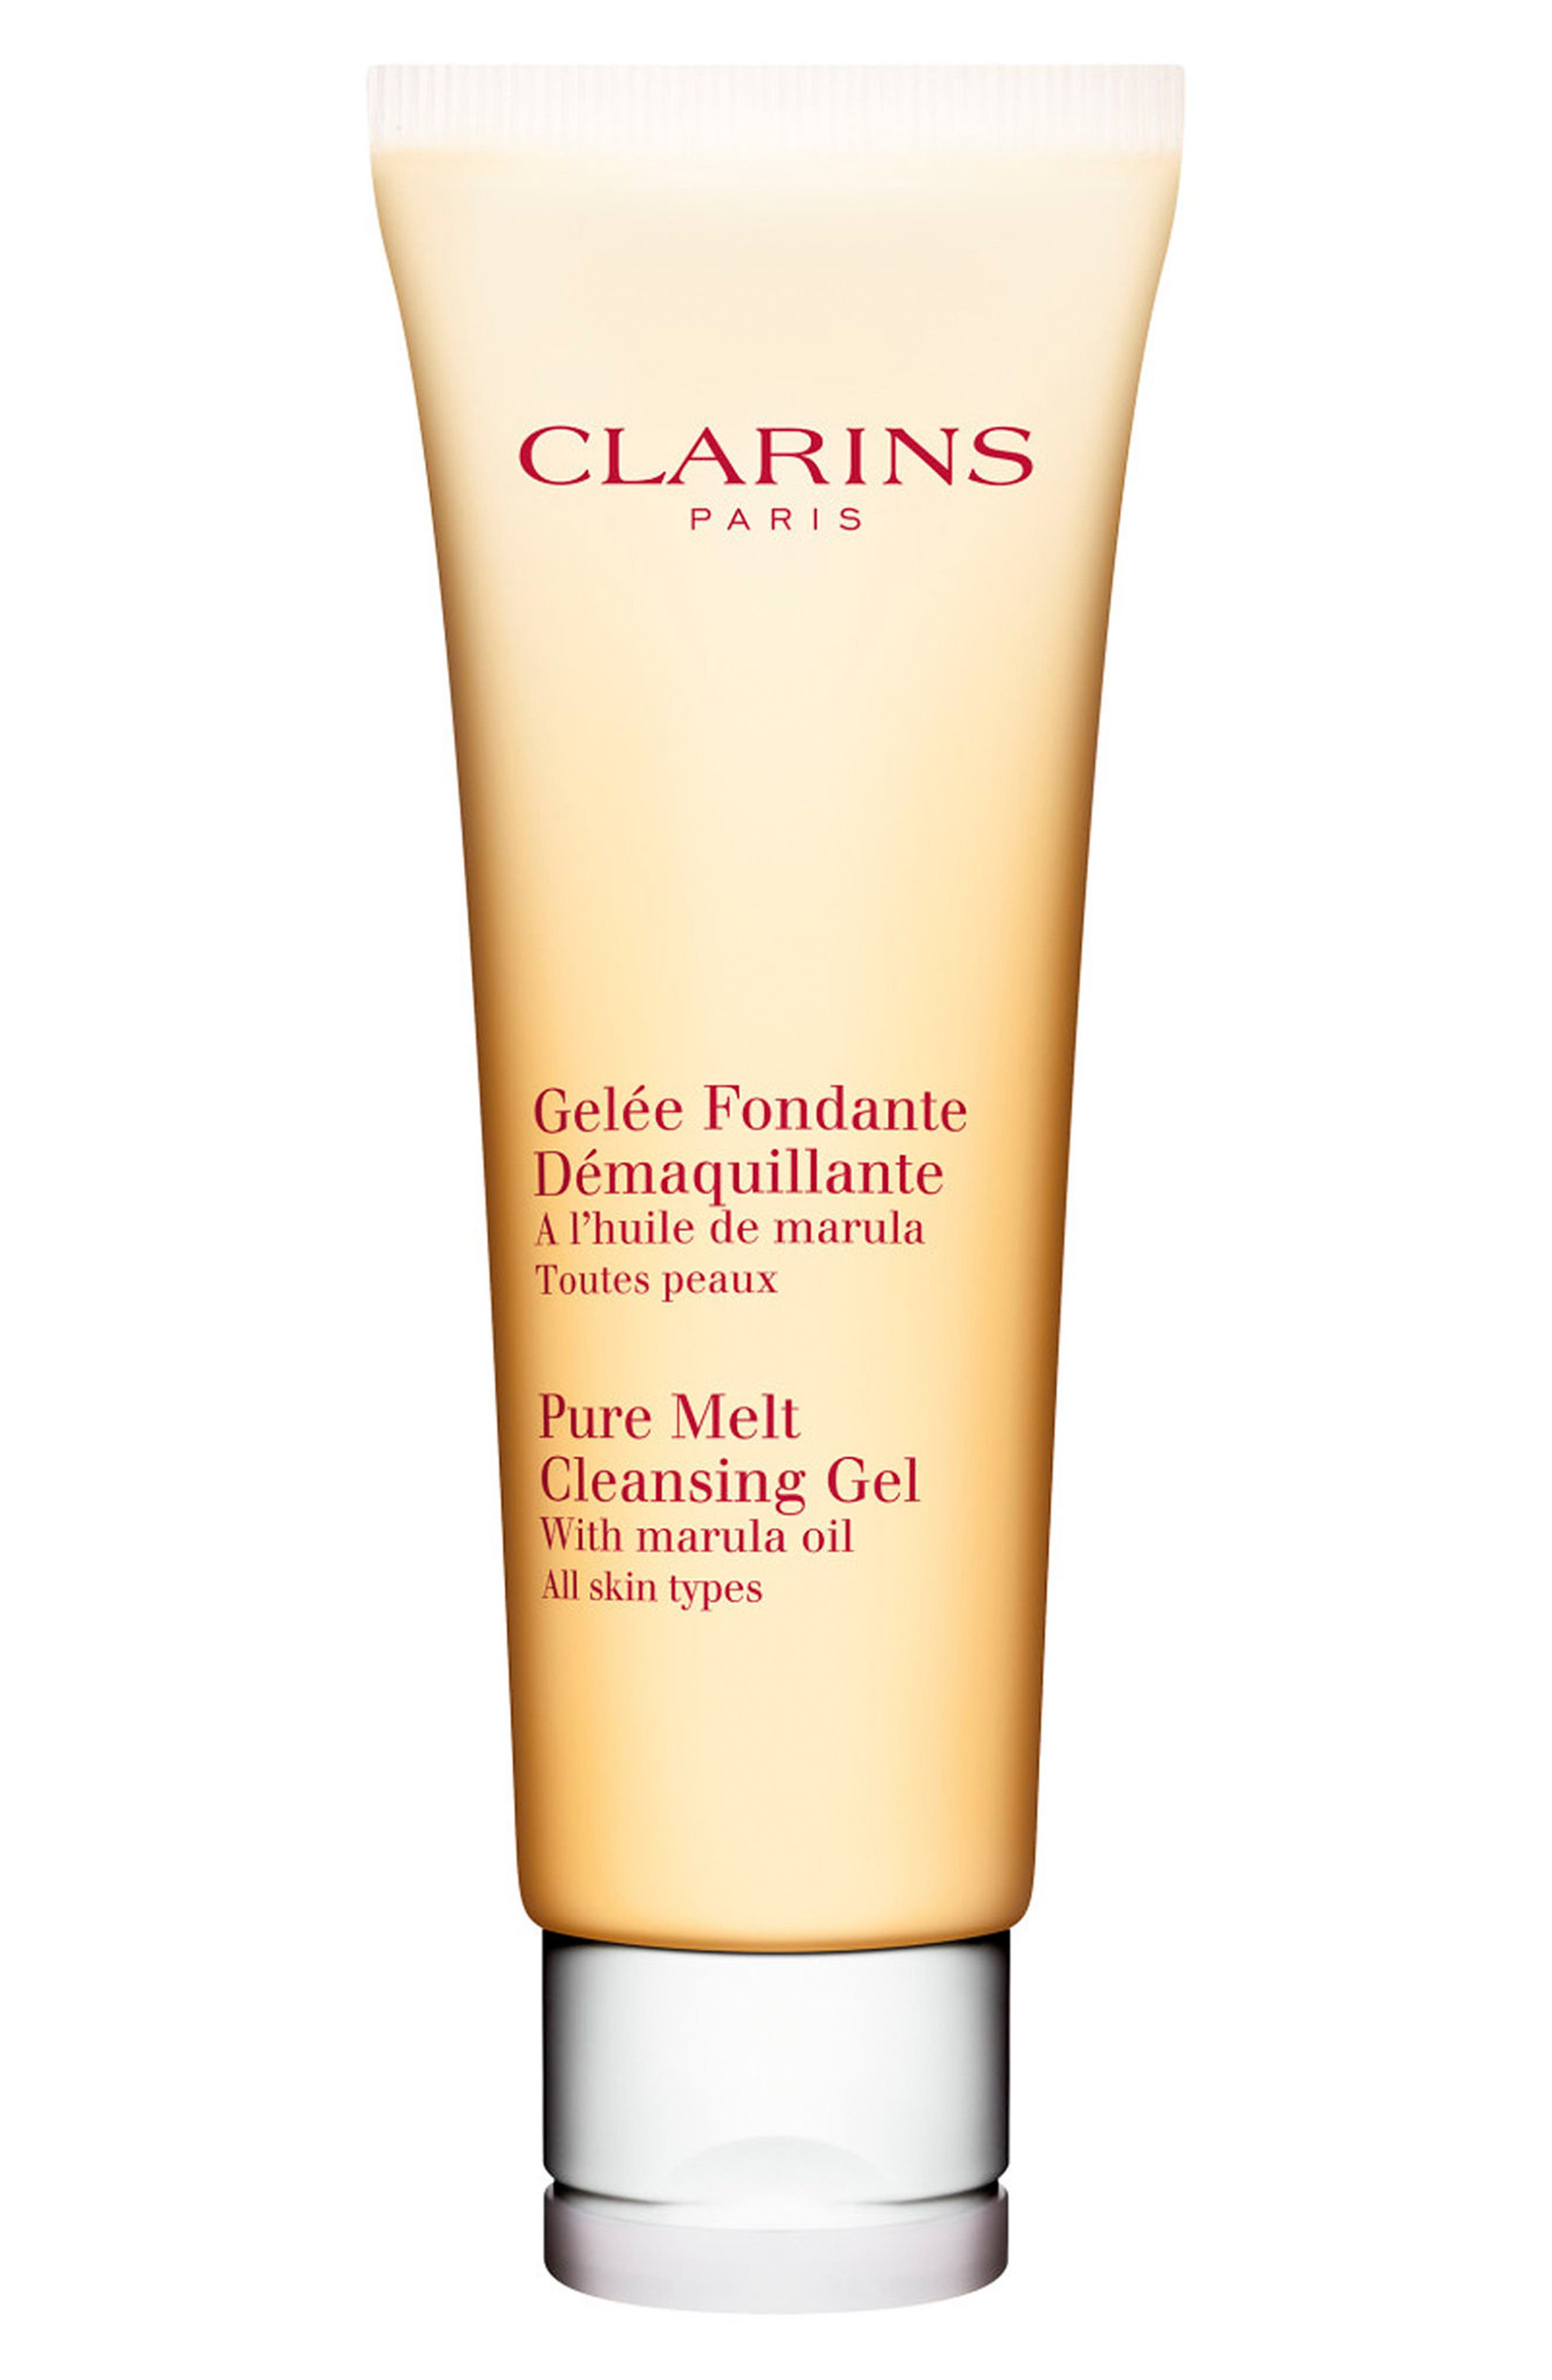 Clarins 'Pure Melt' Cleansing Gel for All Skin Types